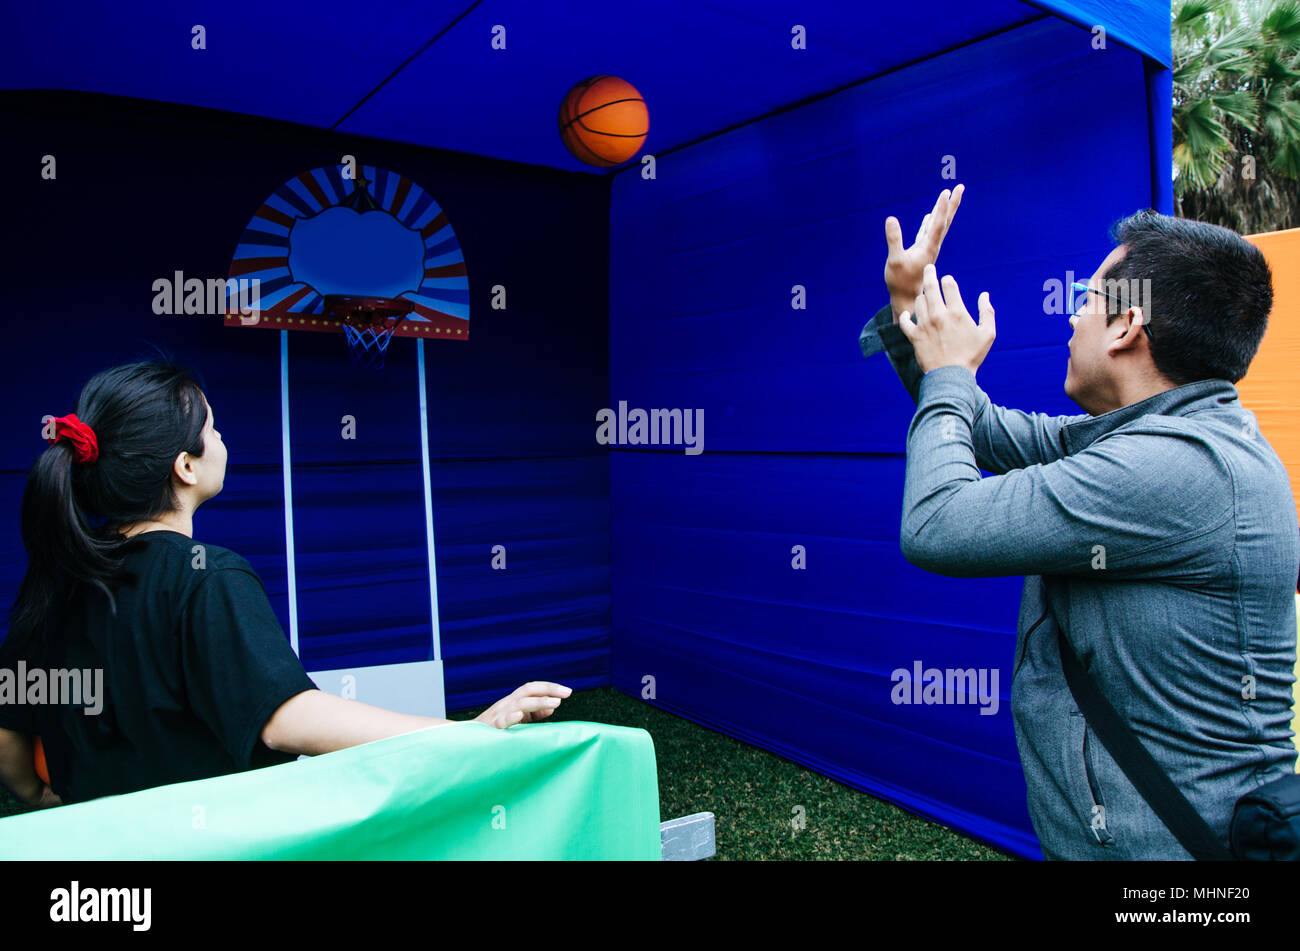 Lima, Peru - AUGUST 18th 2017: Entel Festival . Game of dunk the ball, in the festival - Stock Image